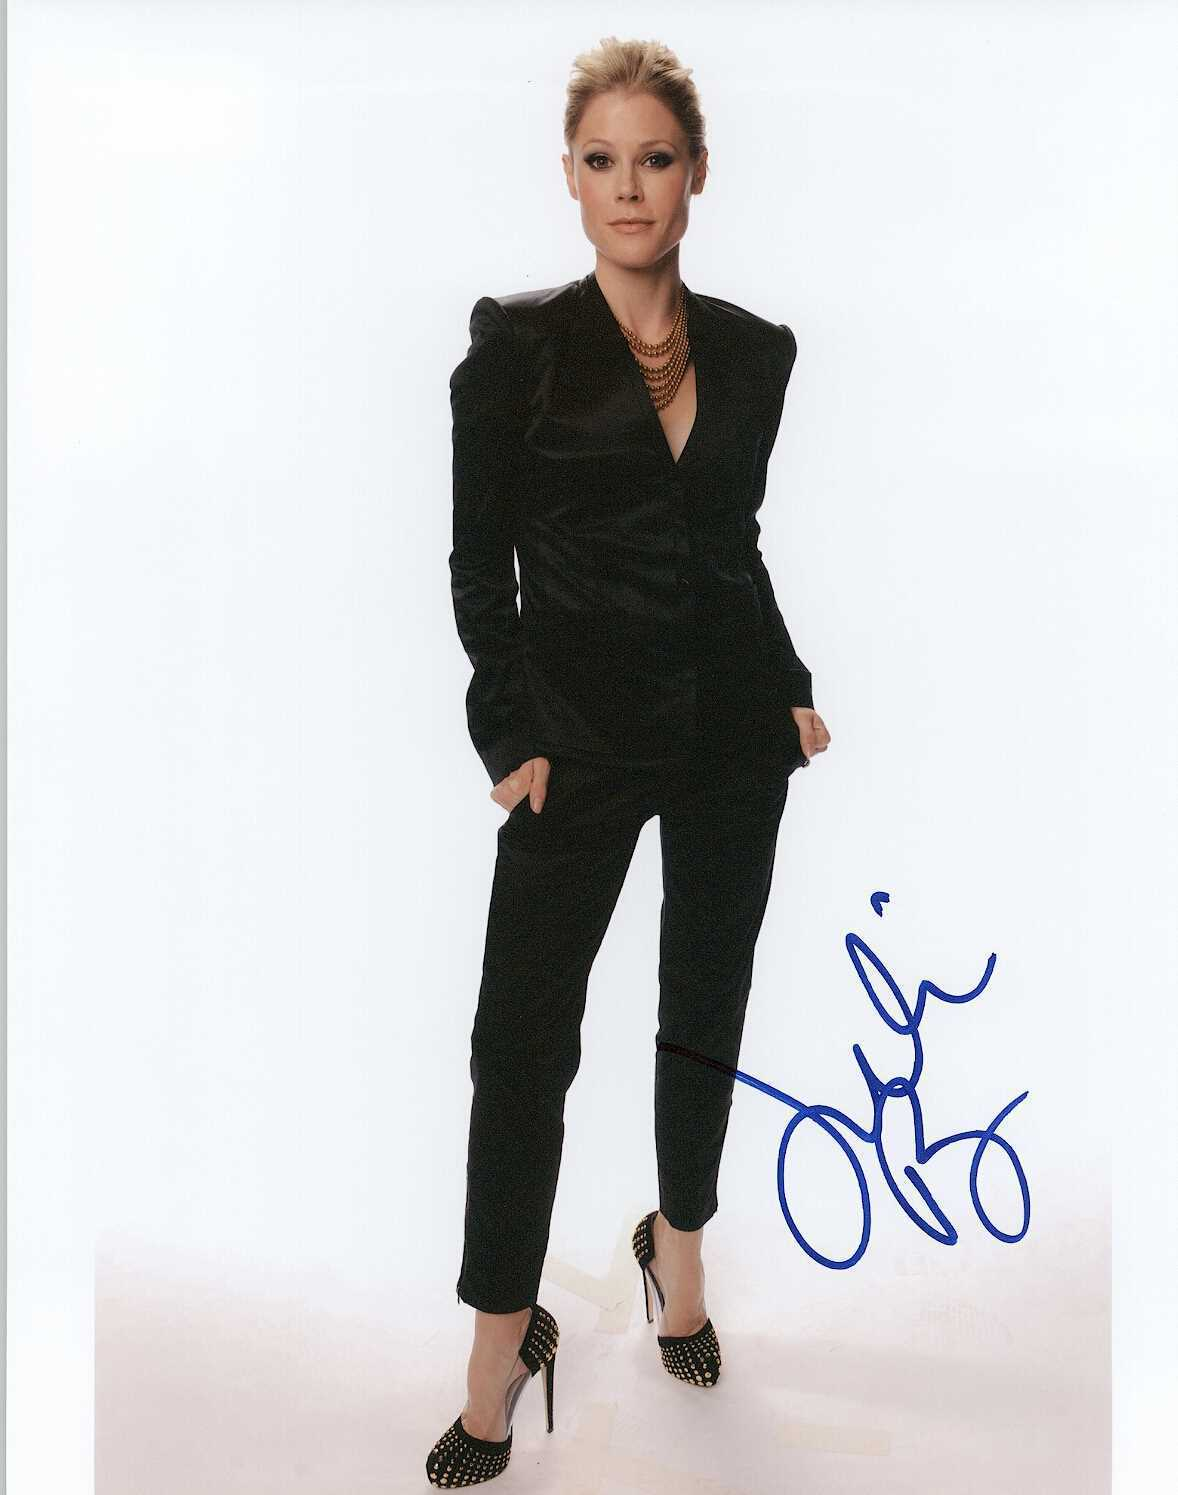 Primary image for Julie Bowen Signed Autographed Glossy 8x10 Photo